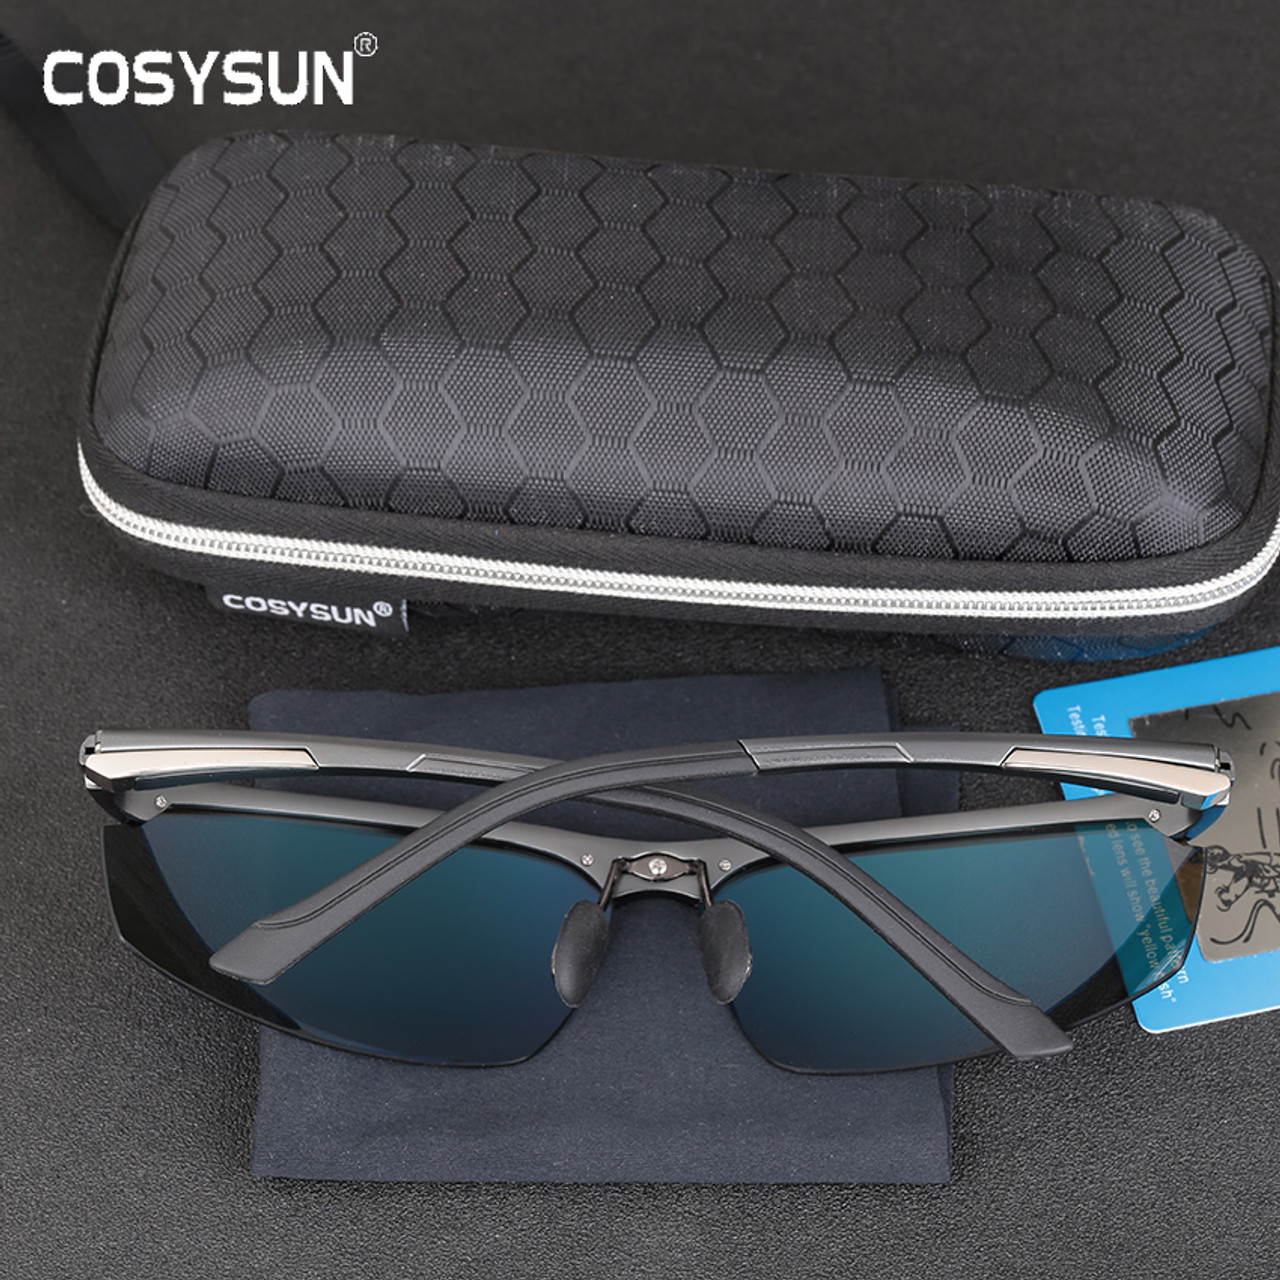 42f57b60b8f ... 2017 New Arrival Aluminum Magnesium Men s Sunglasses Square Polarized  Driving Sun Glasses oculos Male Eyewear Accessories ...